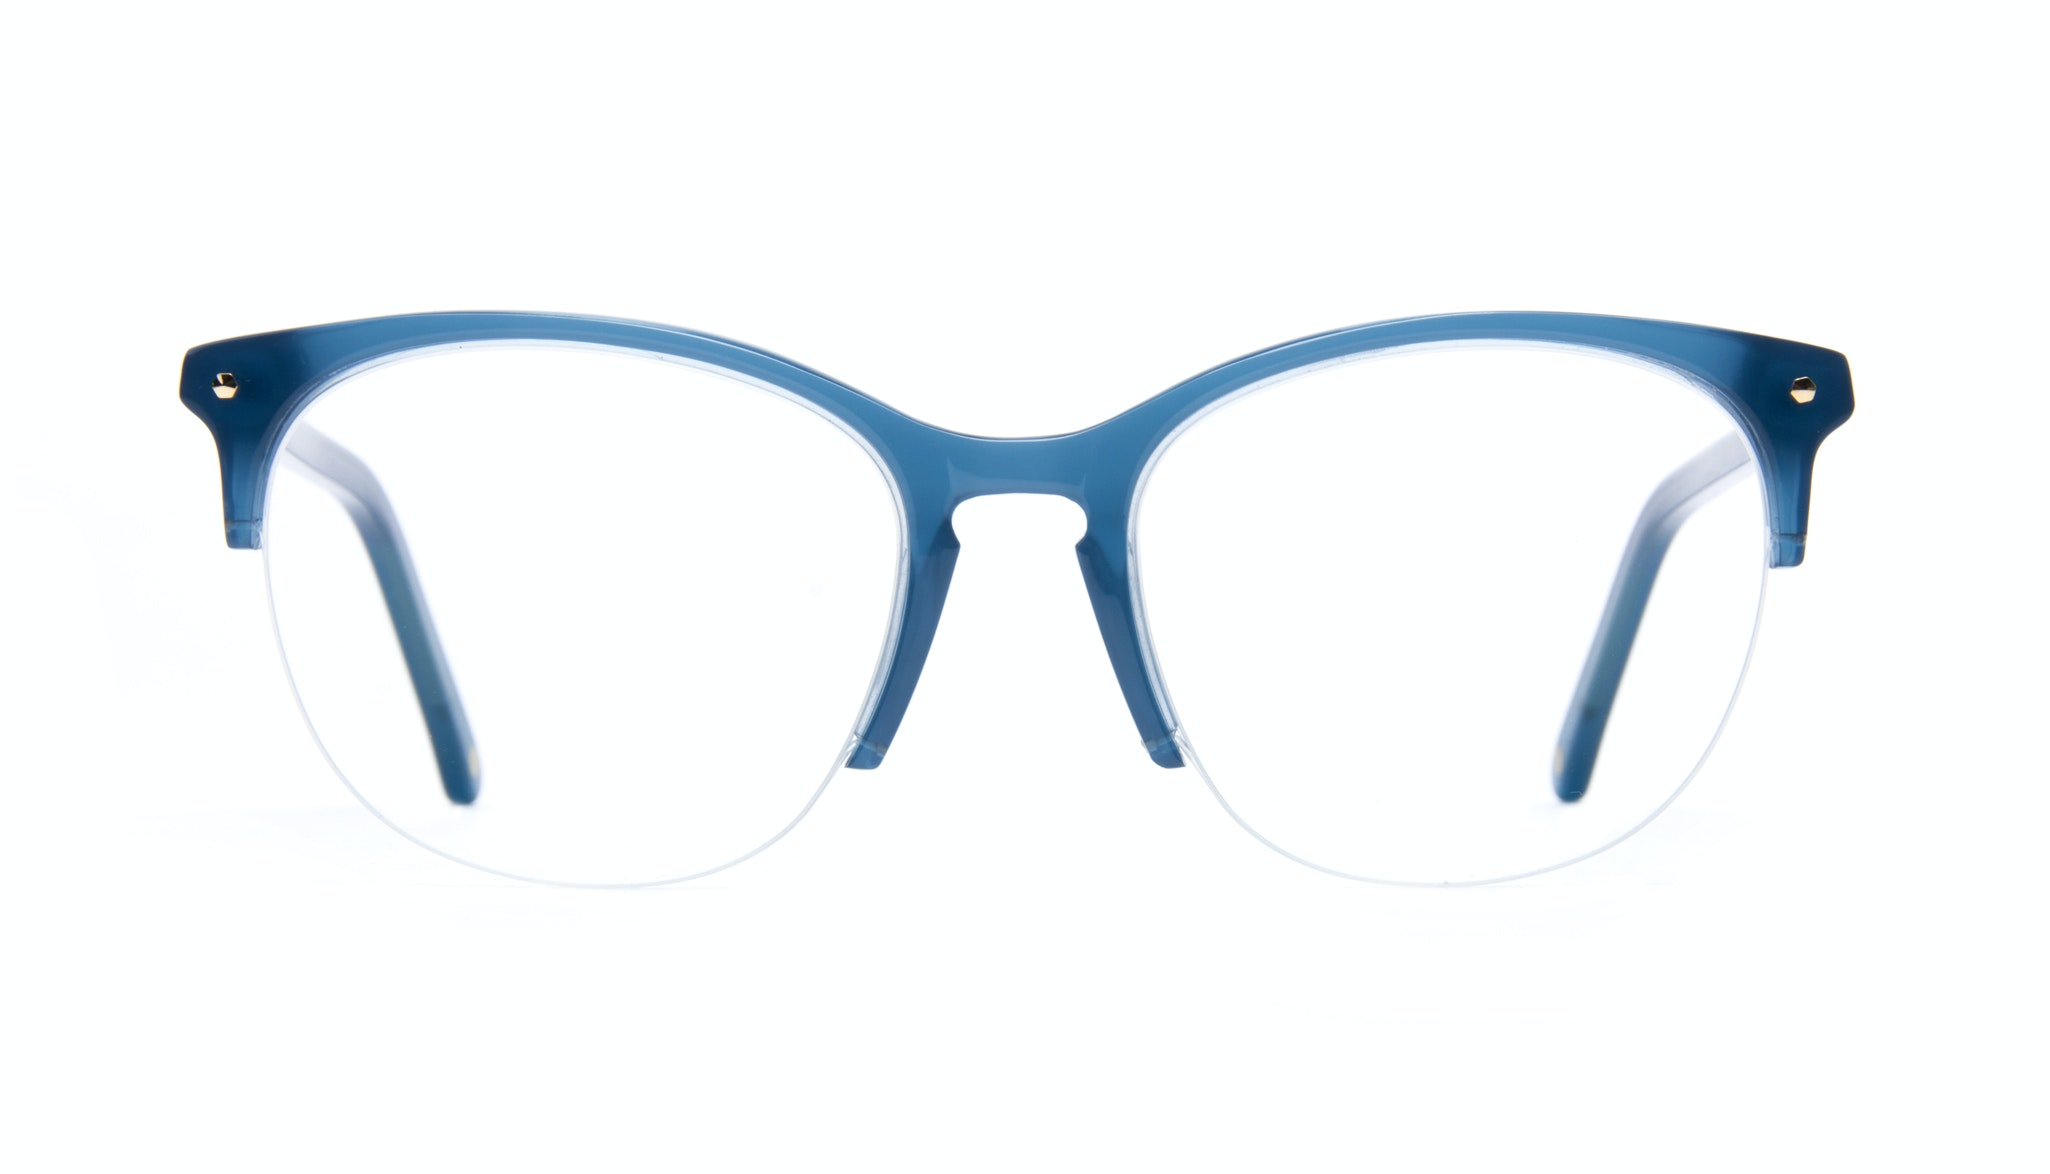 Affordable Fashion Glasses Rectangle Round Eyeglasses Women Nadine Light Marine